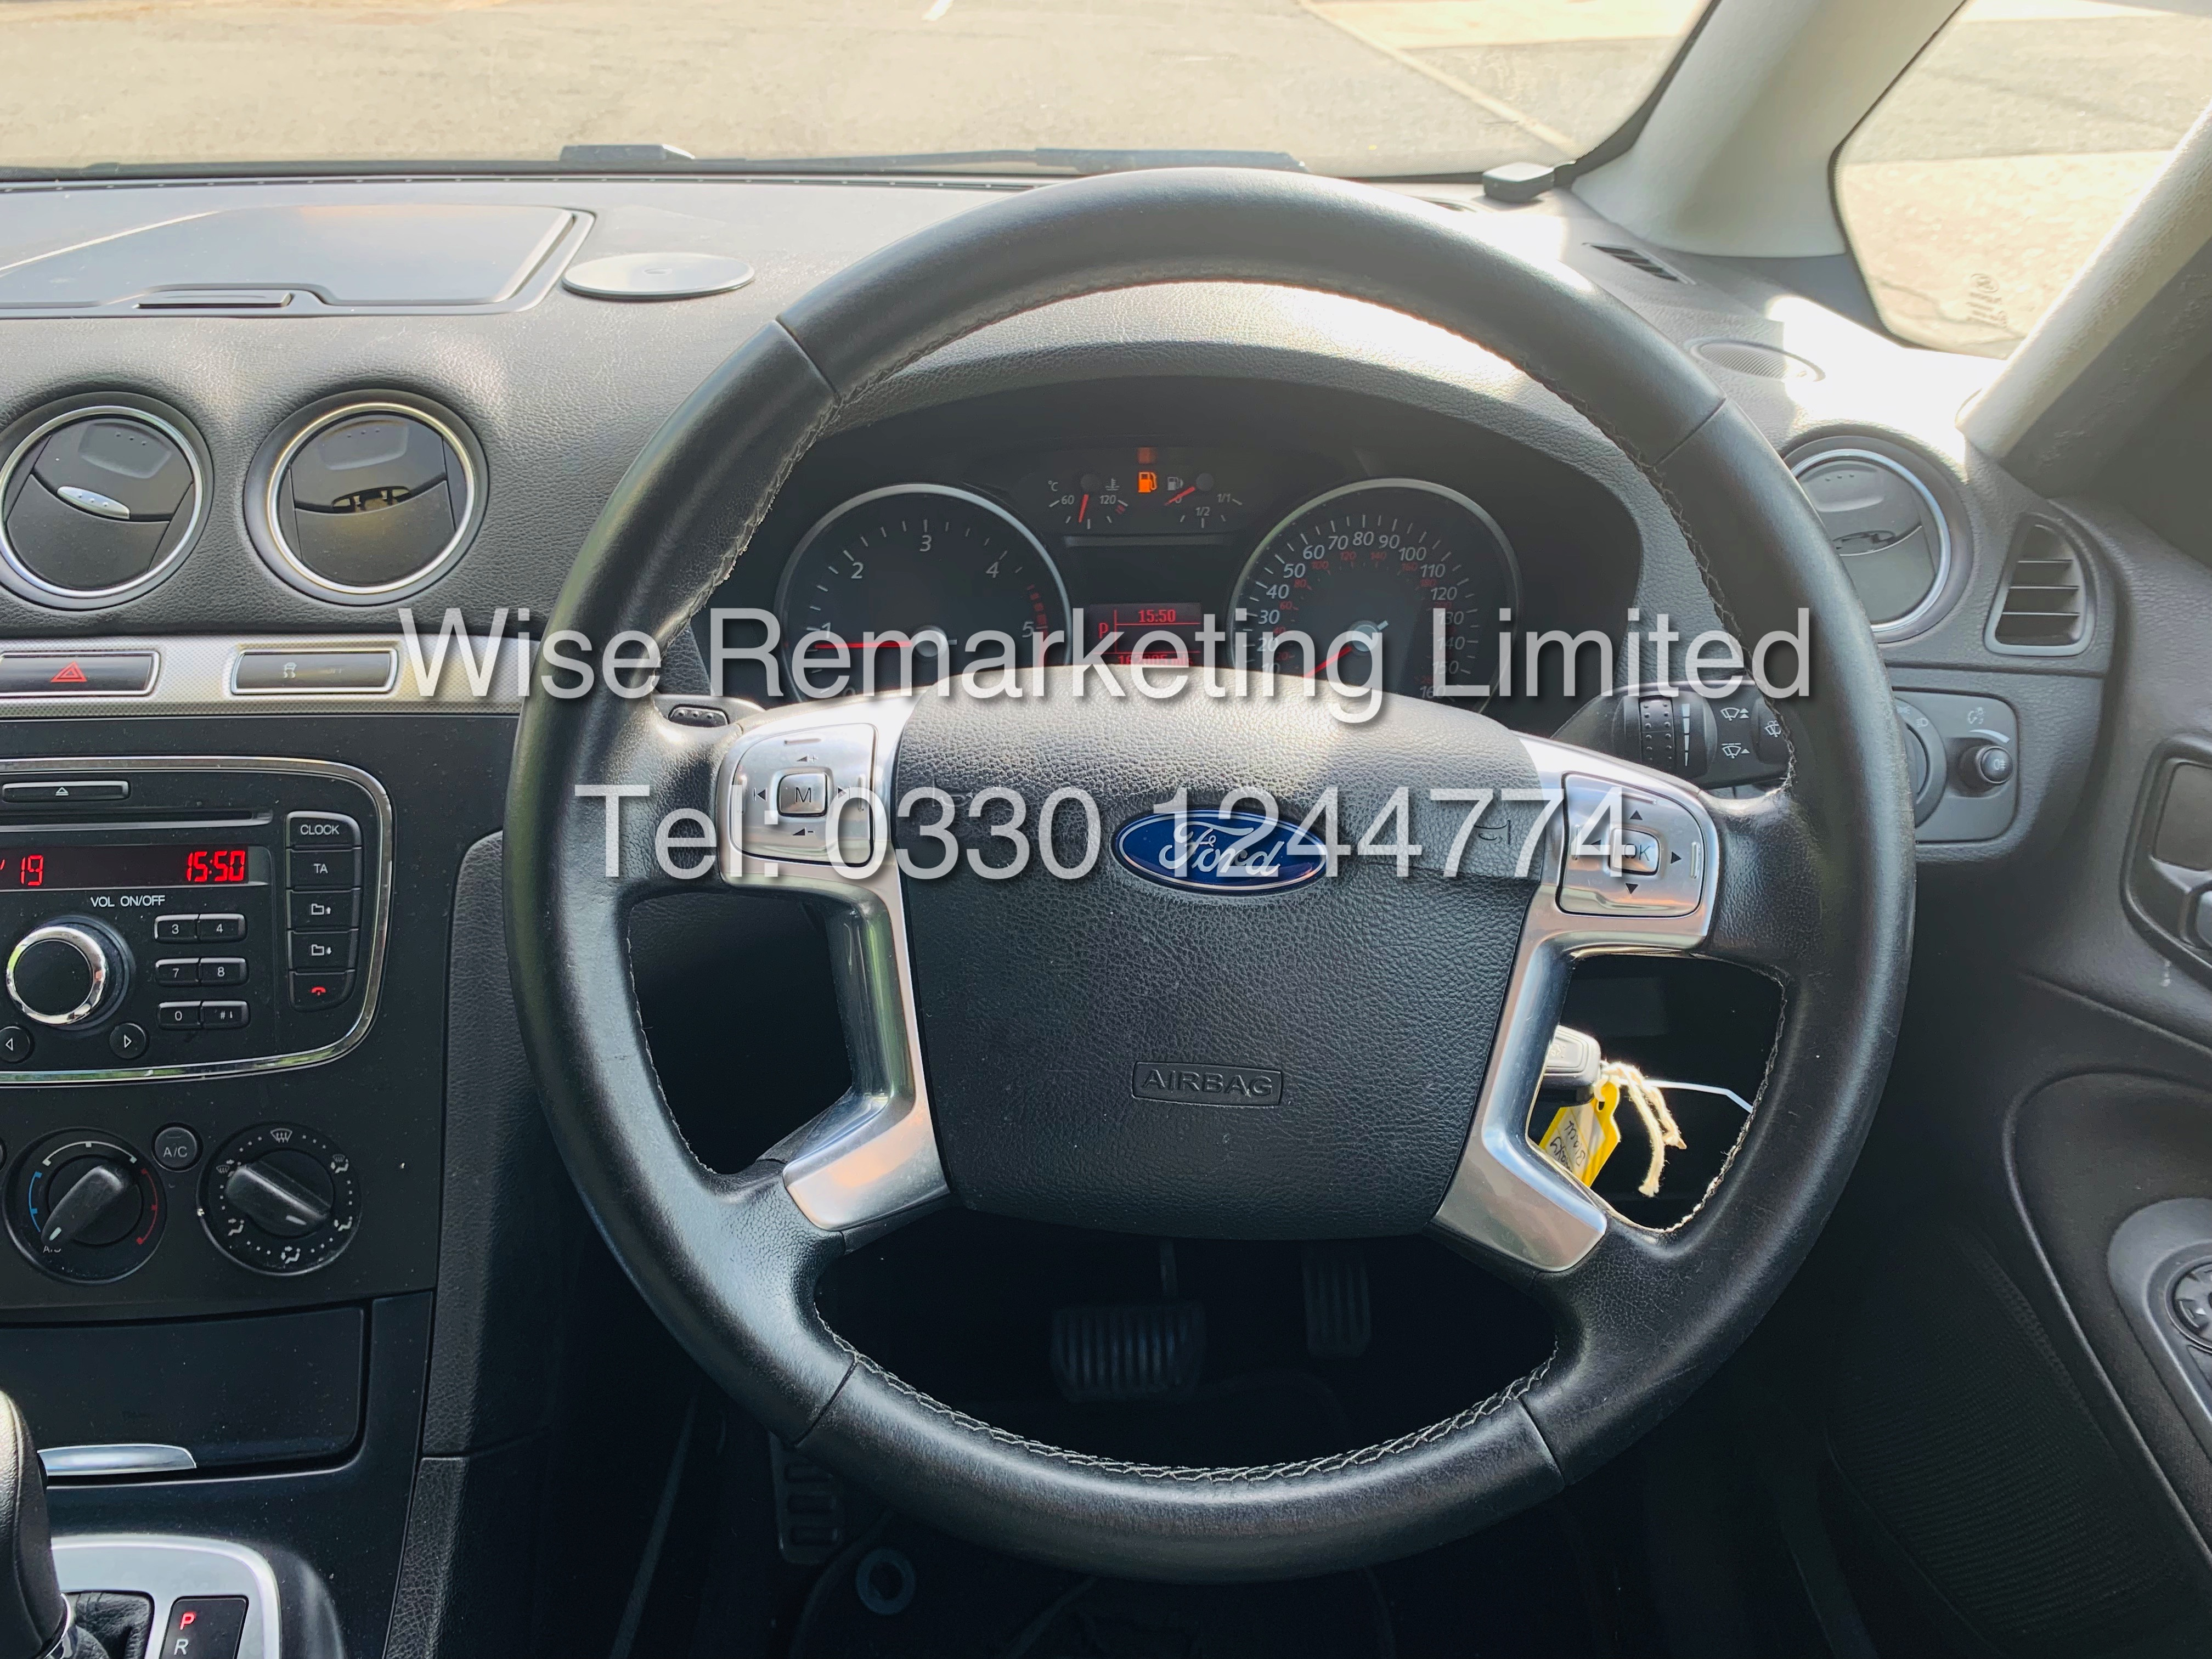 FORD GALAXY ZETEC 2.0L TDCI AUTO 7 SEATER MPV 63 REG *1 OWNER* - Image 18 of 18